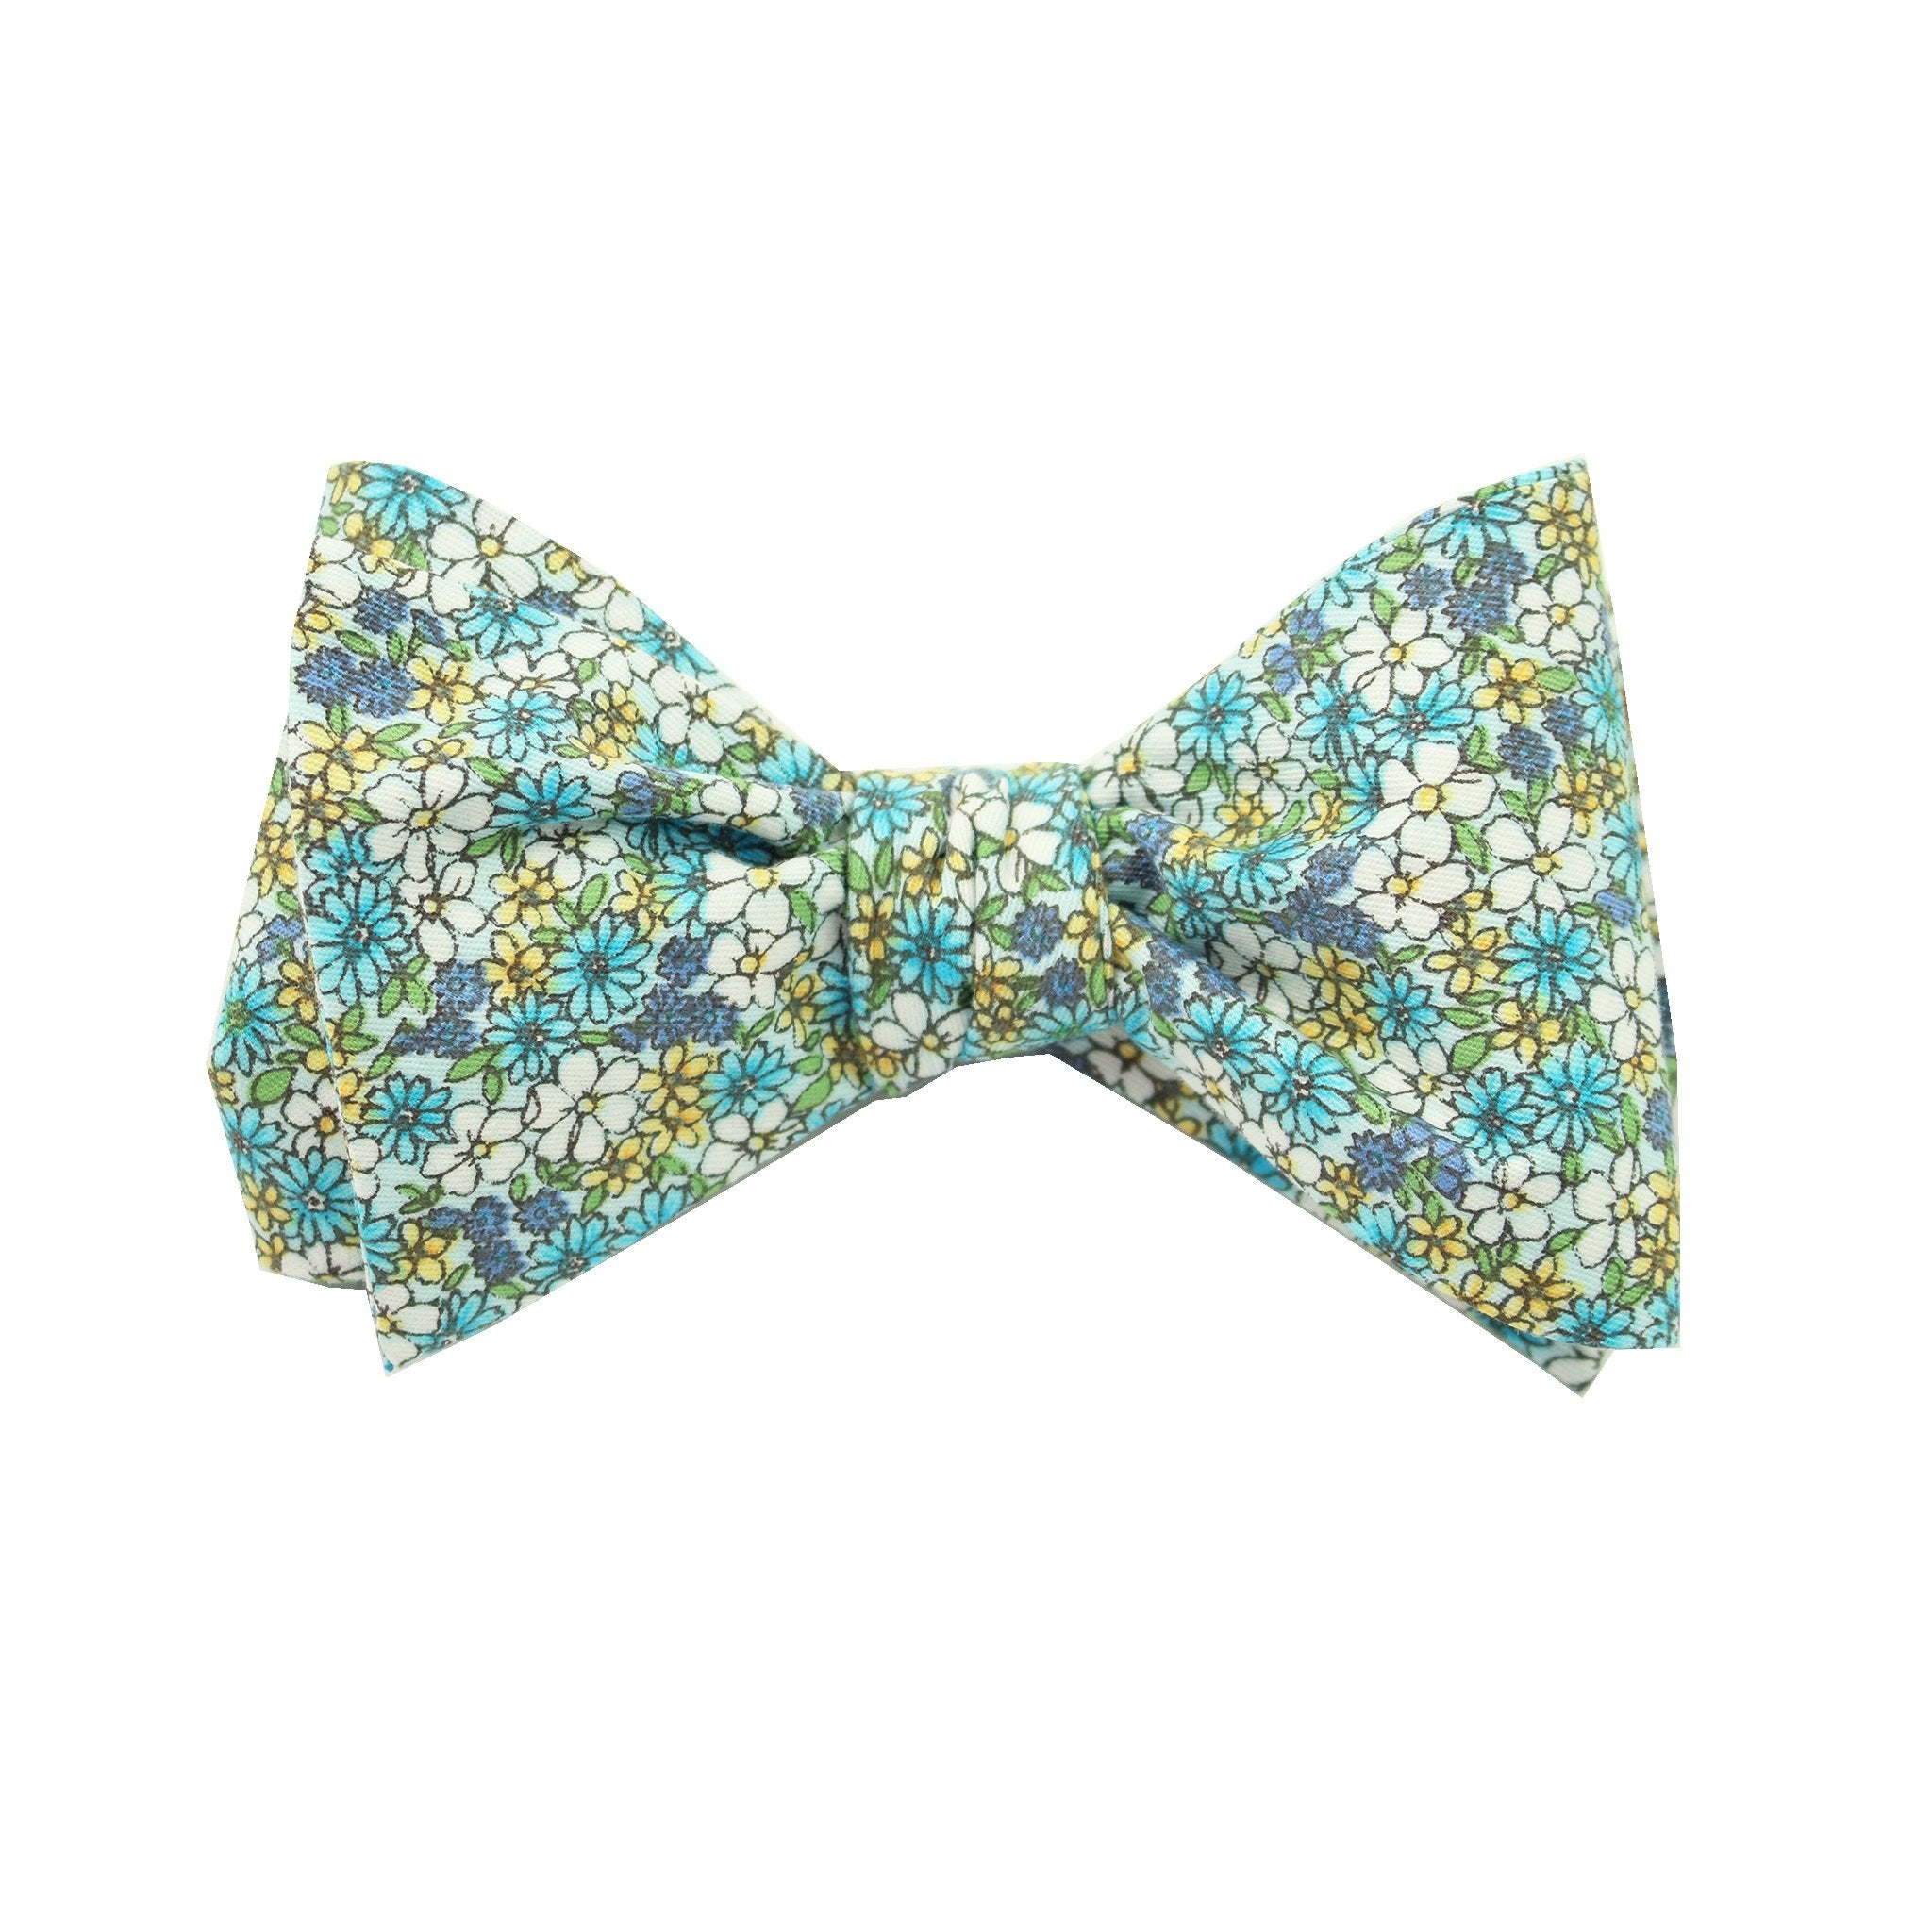 Blue Micro Floral Print Cotton Self Tie Bow Tie